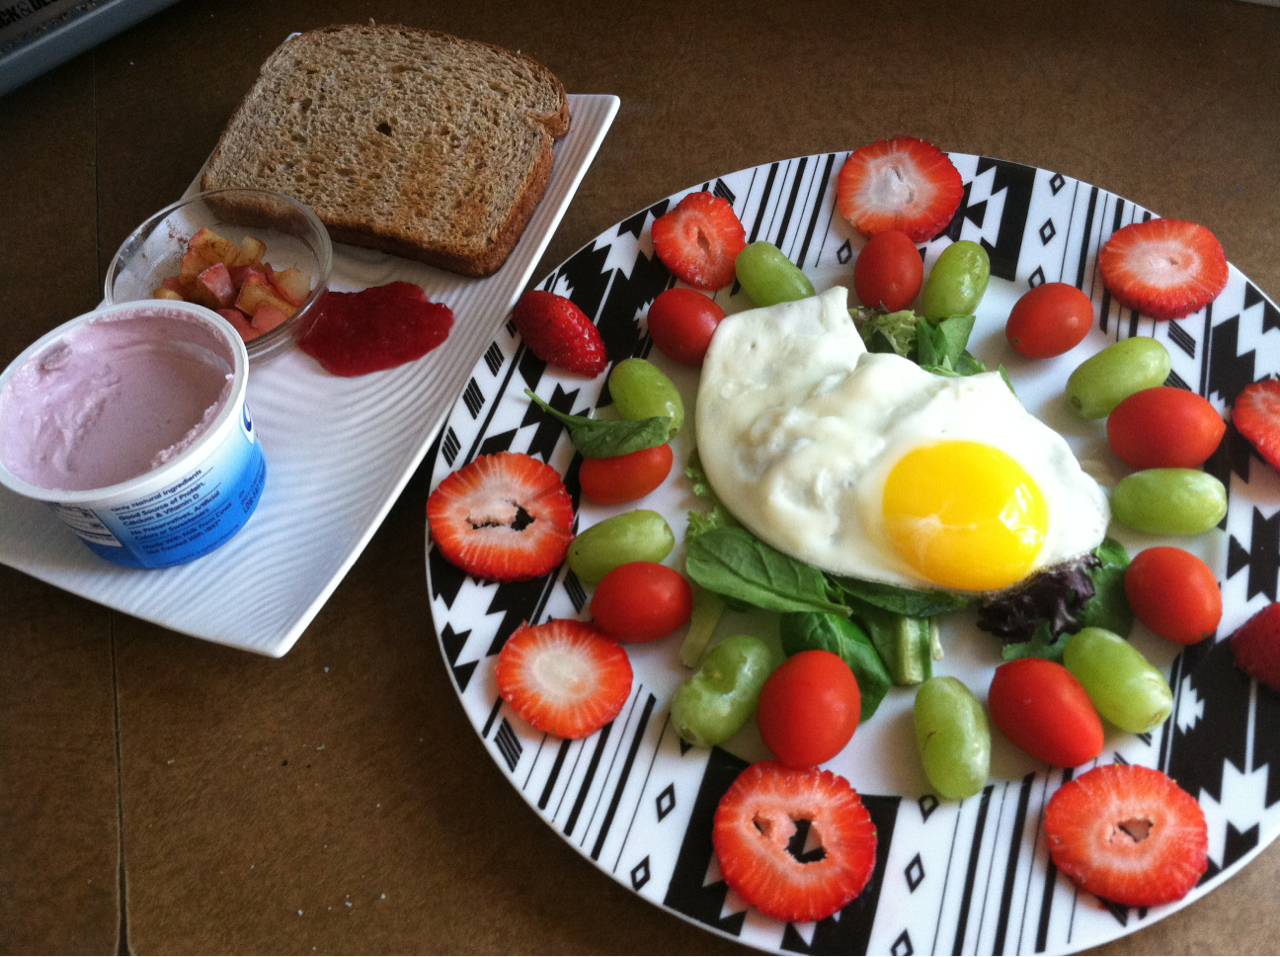 happilyfitandhealthy :     Breakie!  An egg on top of a bed of salad, tomatoes, grapes, strawberries, Greek yogurt, apple compote, and toast with jelly! :)